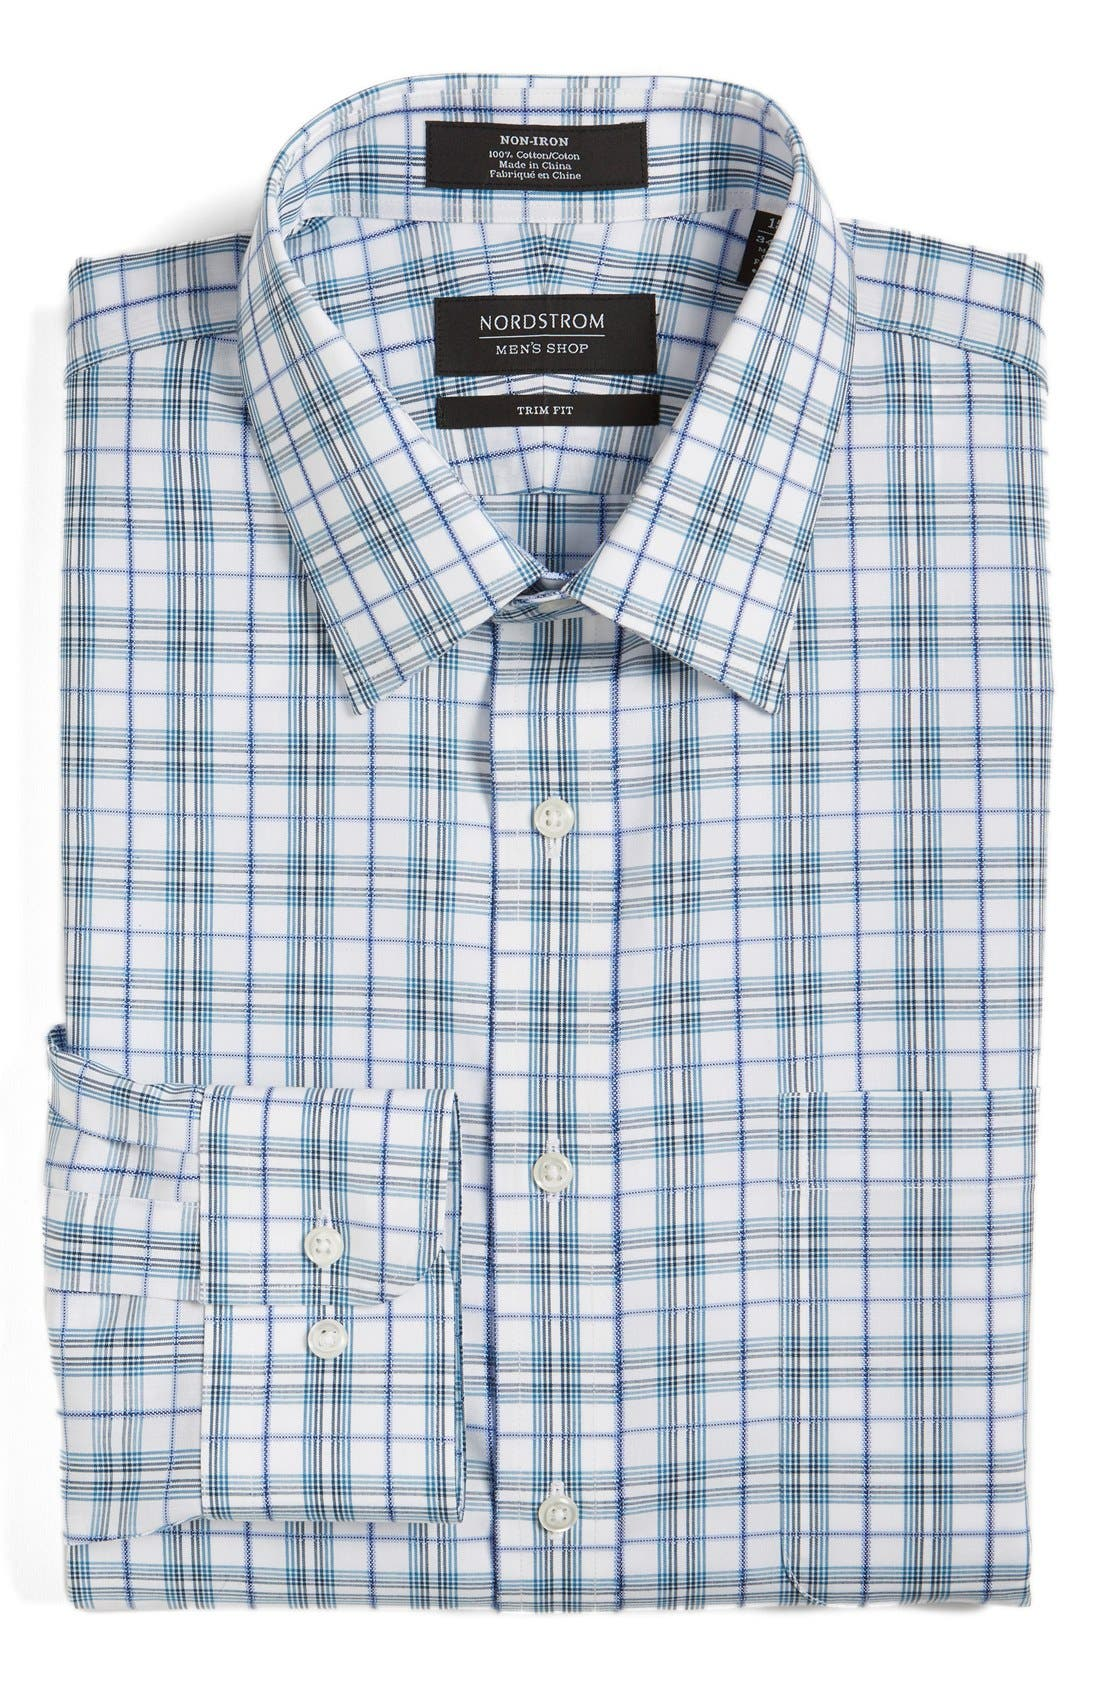 Nordstrom Men's Shop Trim Fit Non-Iron Check Dress Shirt